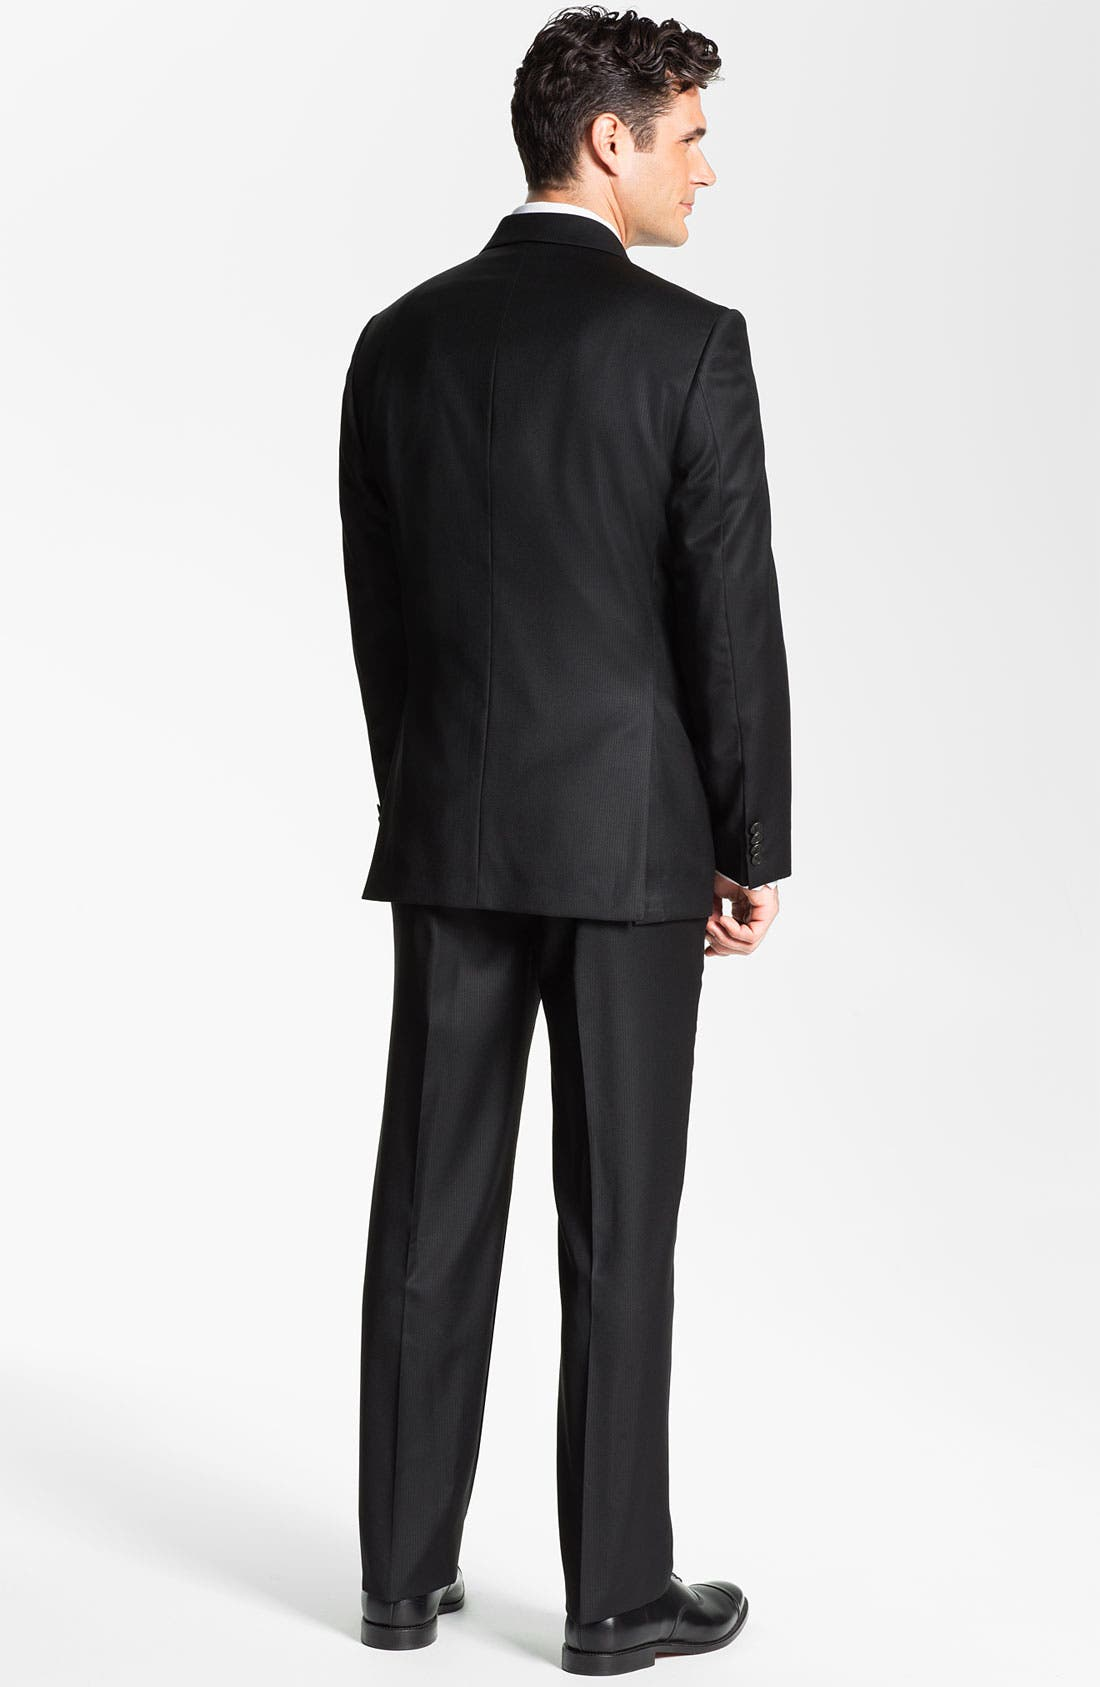 Alternate Image 3  - Joseph Abboud Black Wool Suit